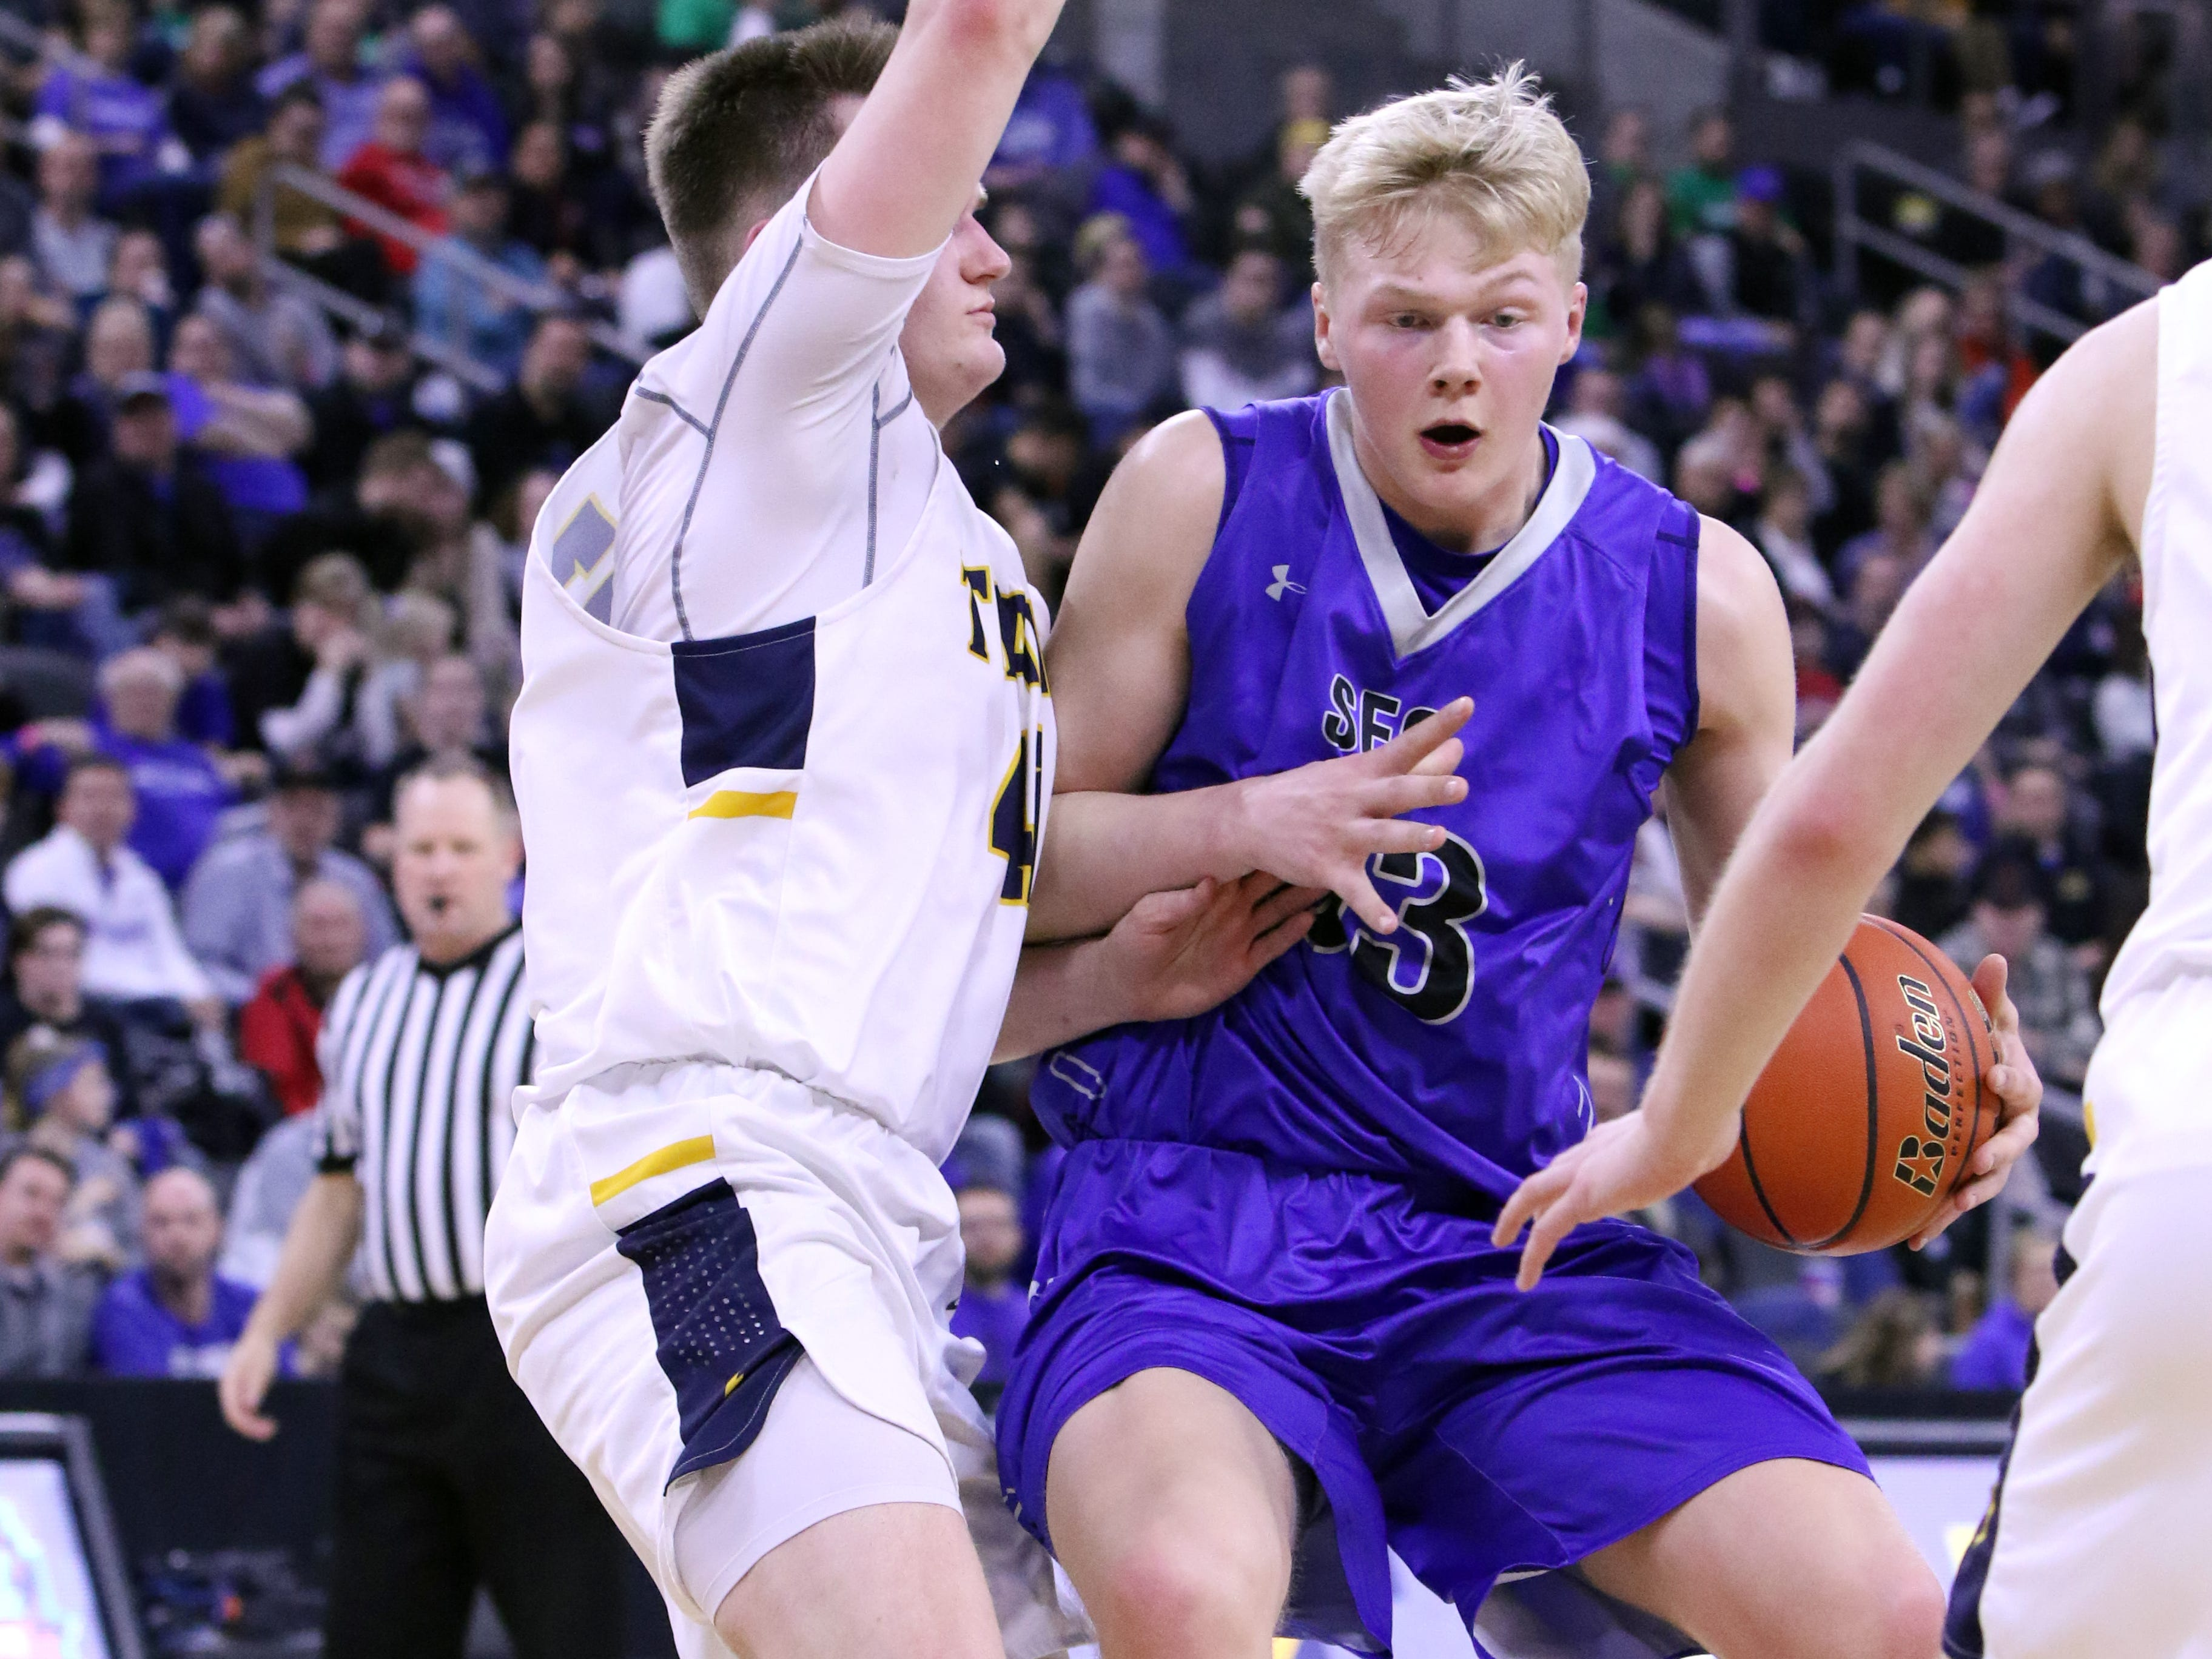 Zach Witte of Sioux Falls Christian battles against Kaleb Joffer of Tea Area during Saturday's Class A title game at the Premier Center.